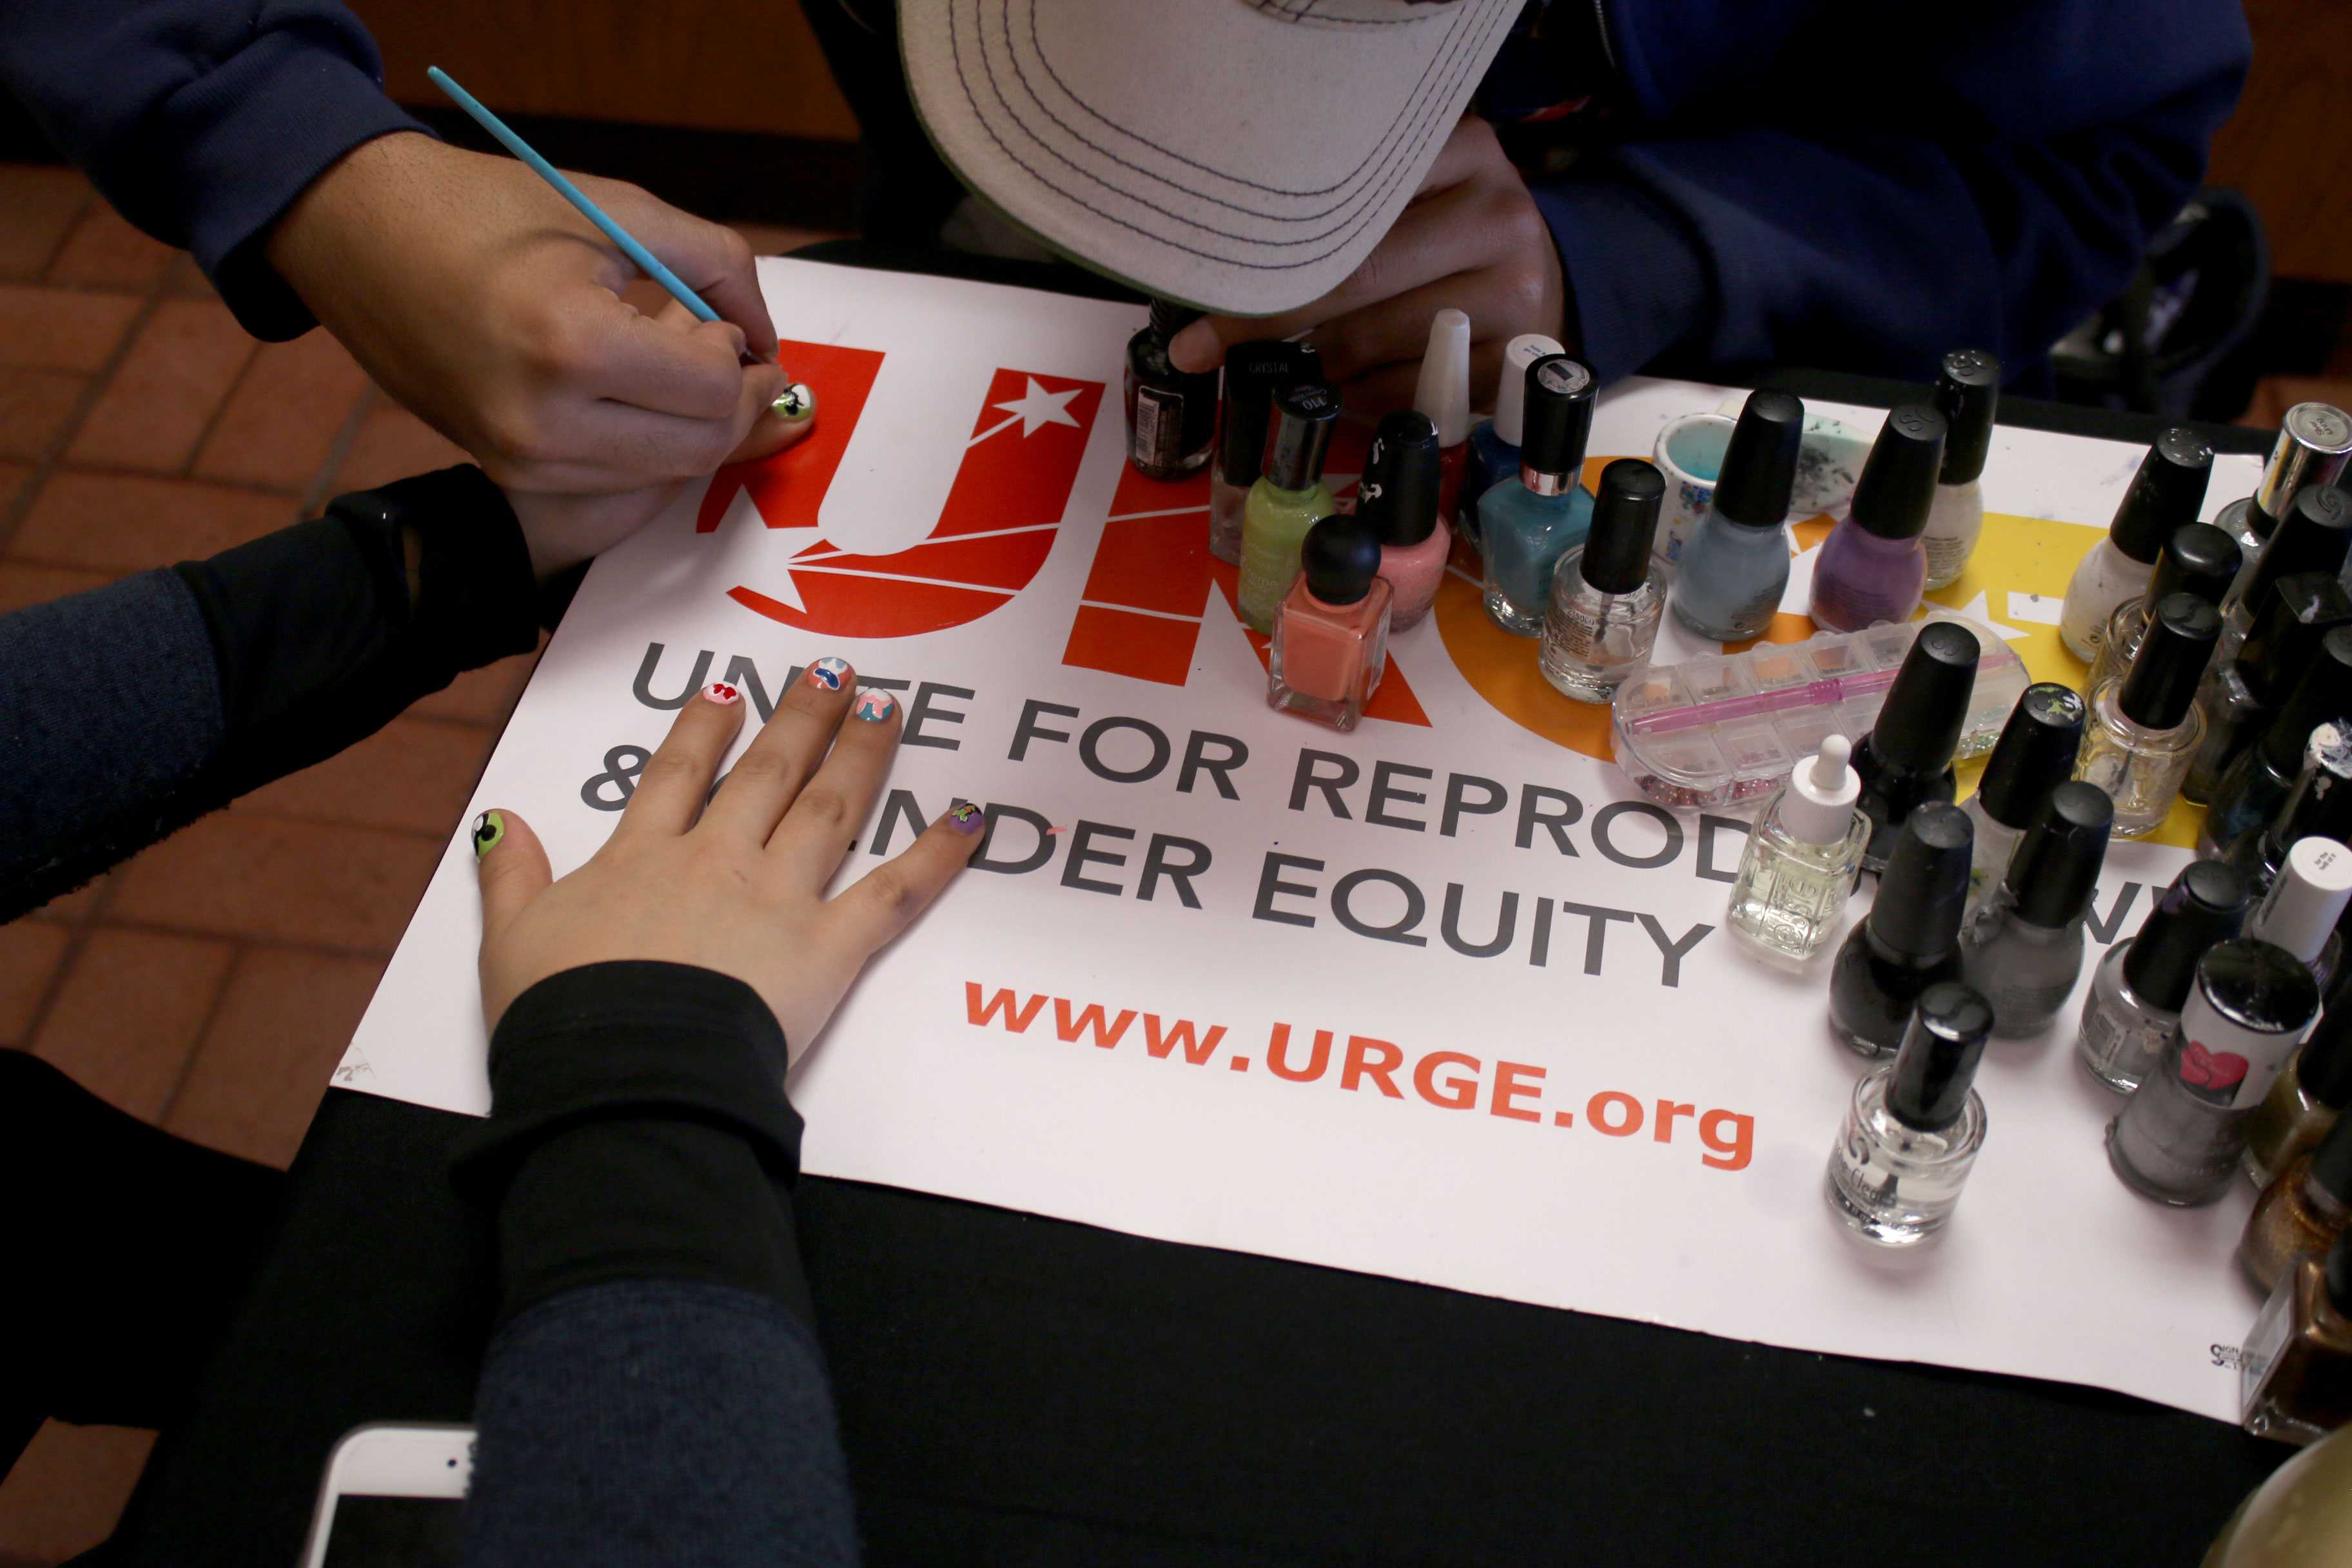 UTEP is now the sixth university in Texas to join URGE, making them the lone voice in the Southwest region.